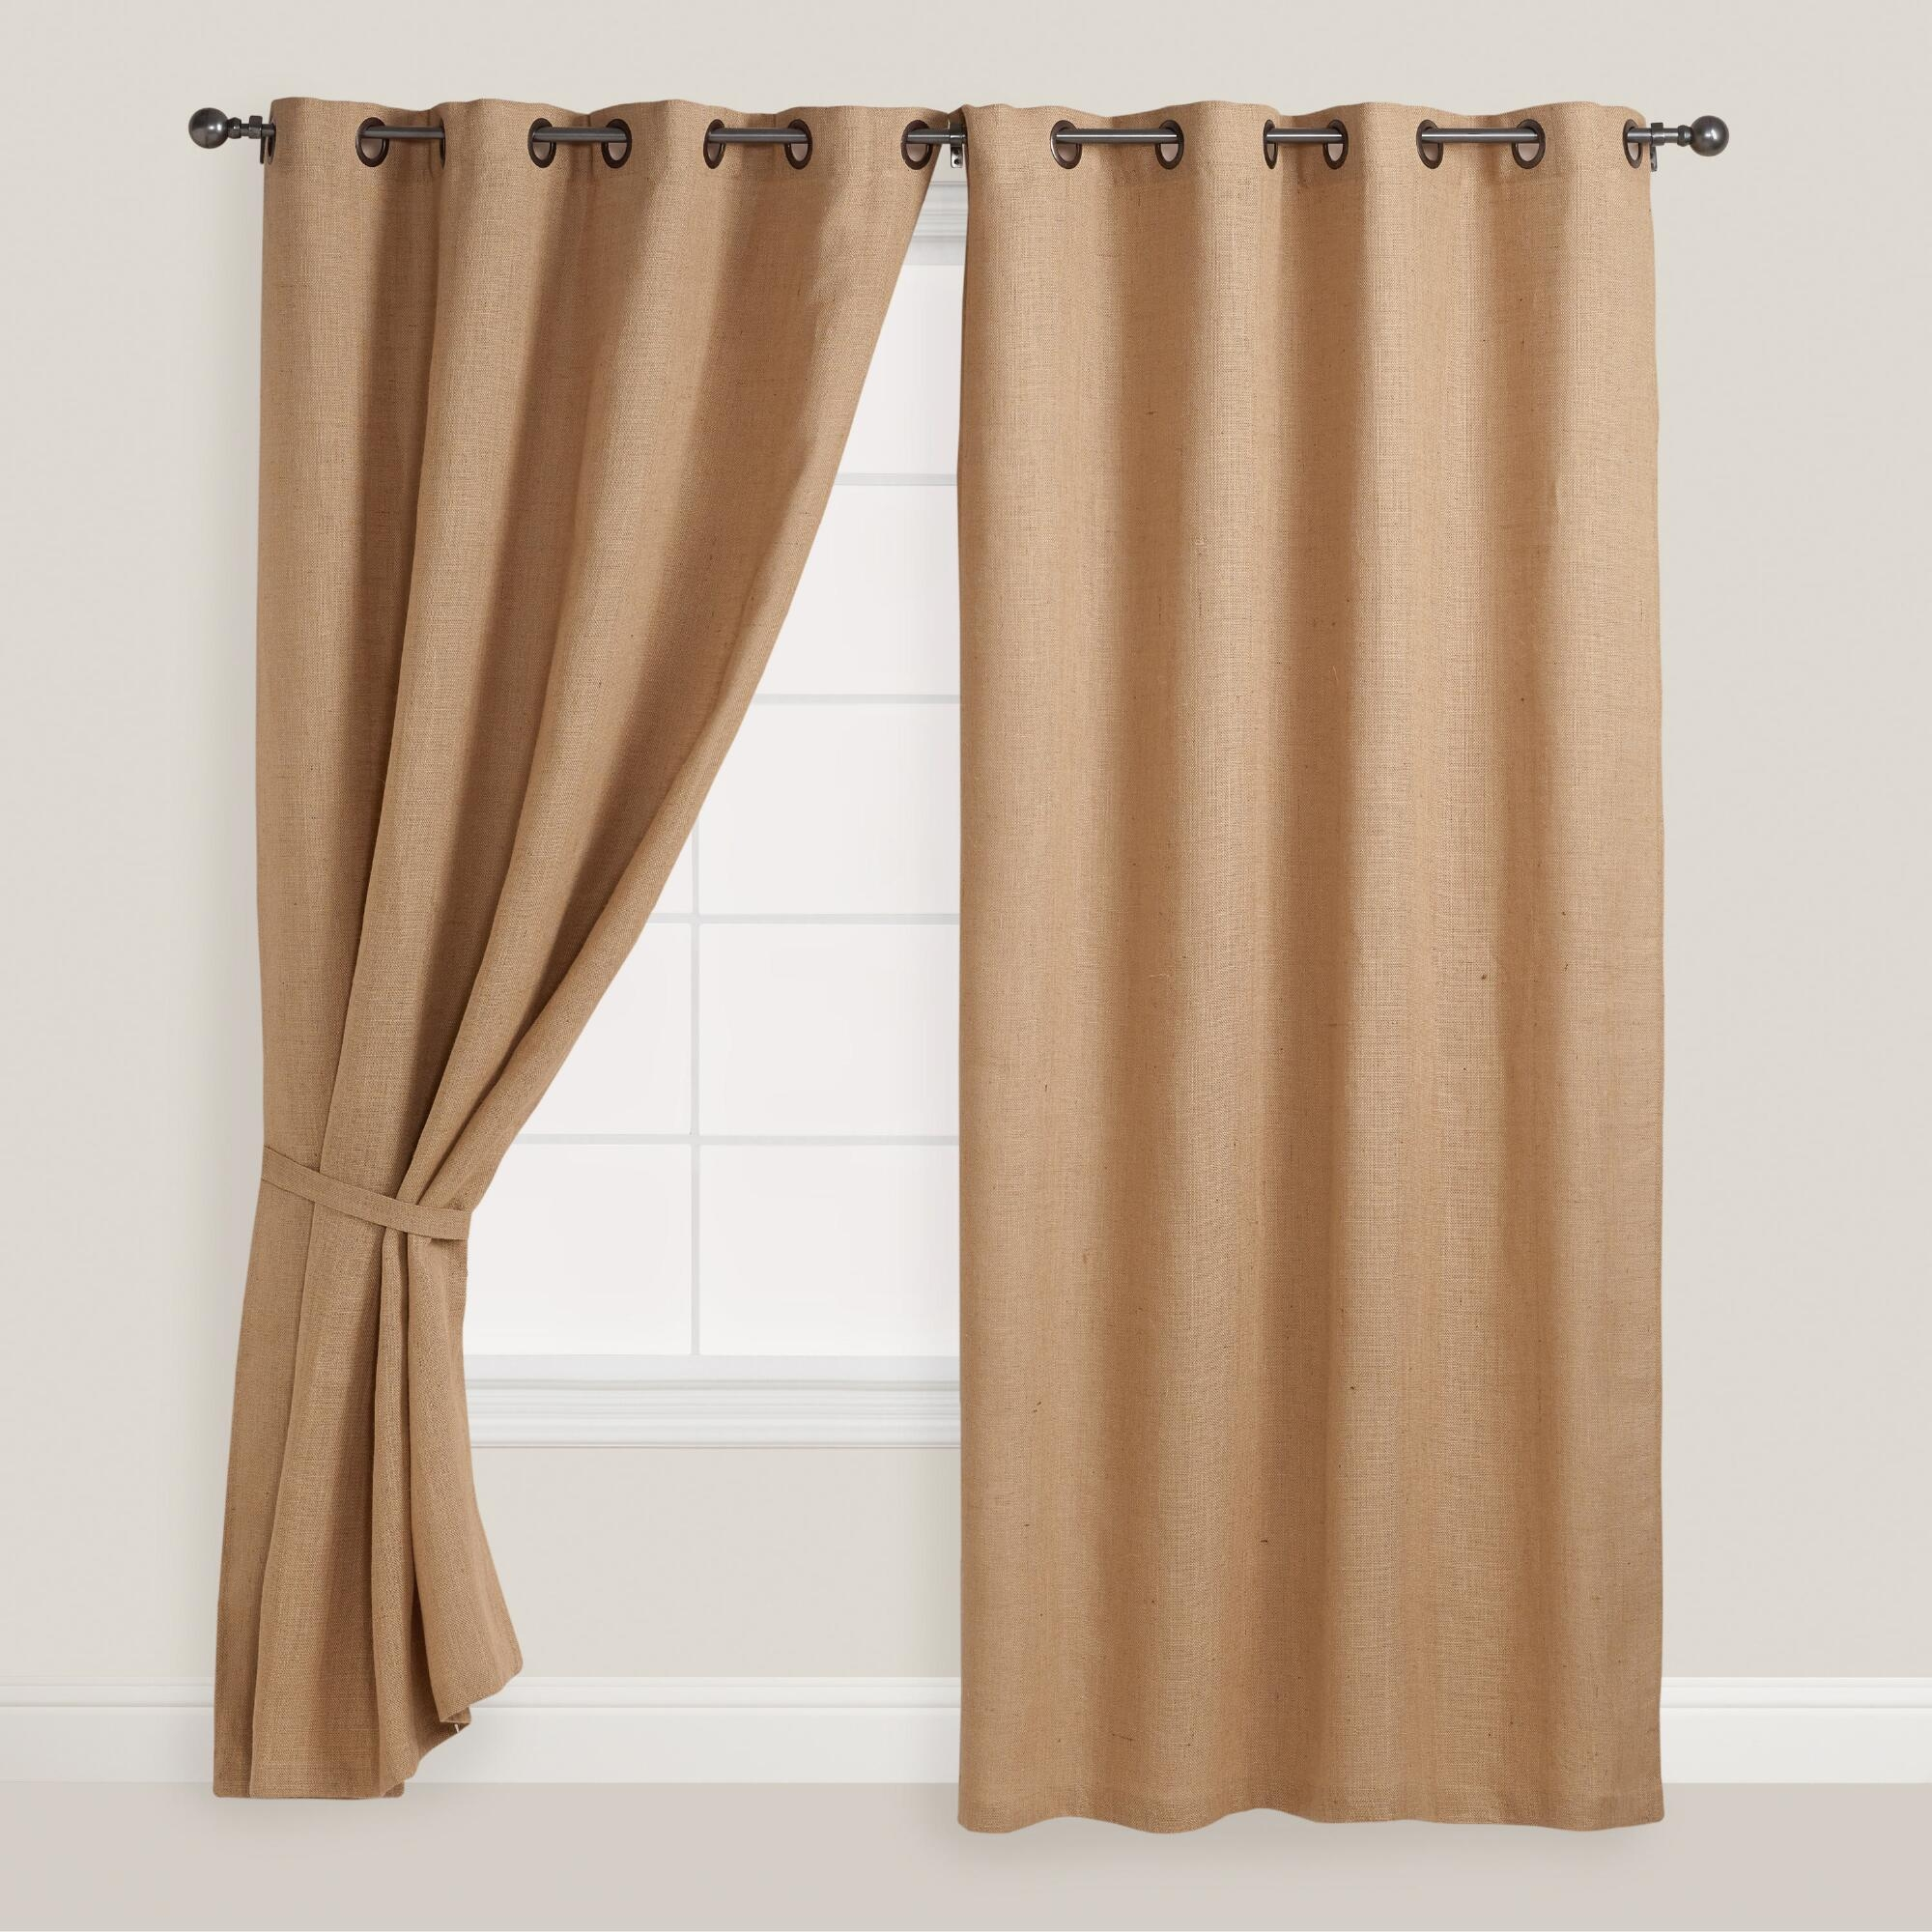 Decorating Make Your Home More Beautiful With Burlap Curtains For Inside Burlap Curtains (Image 16 of 25)